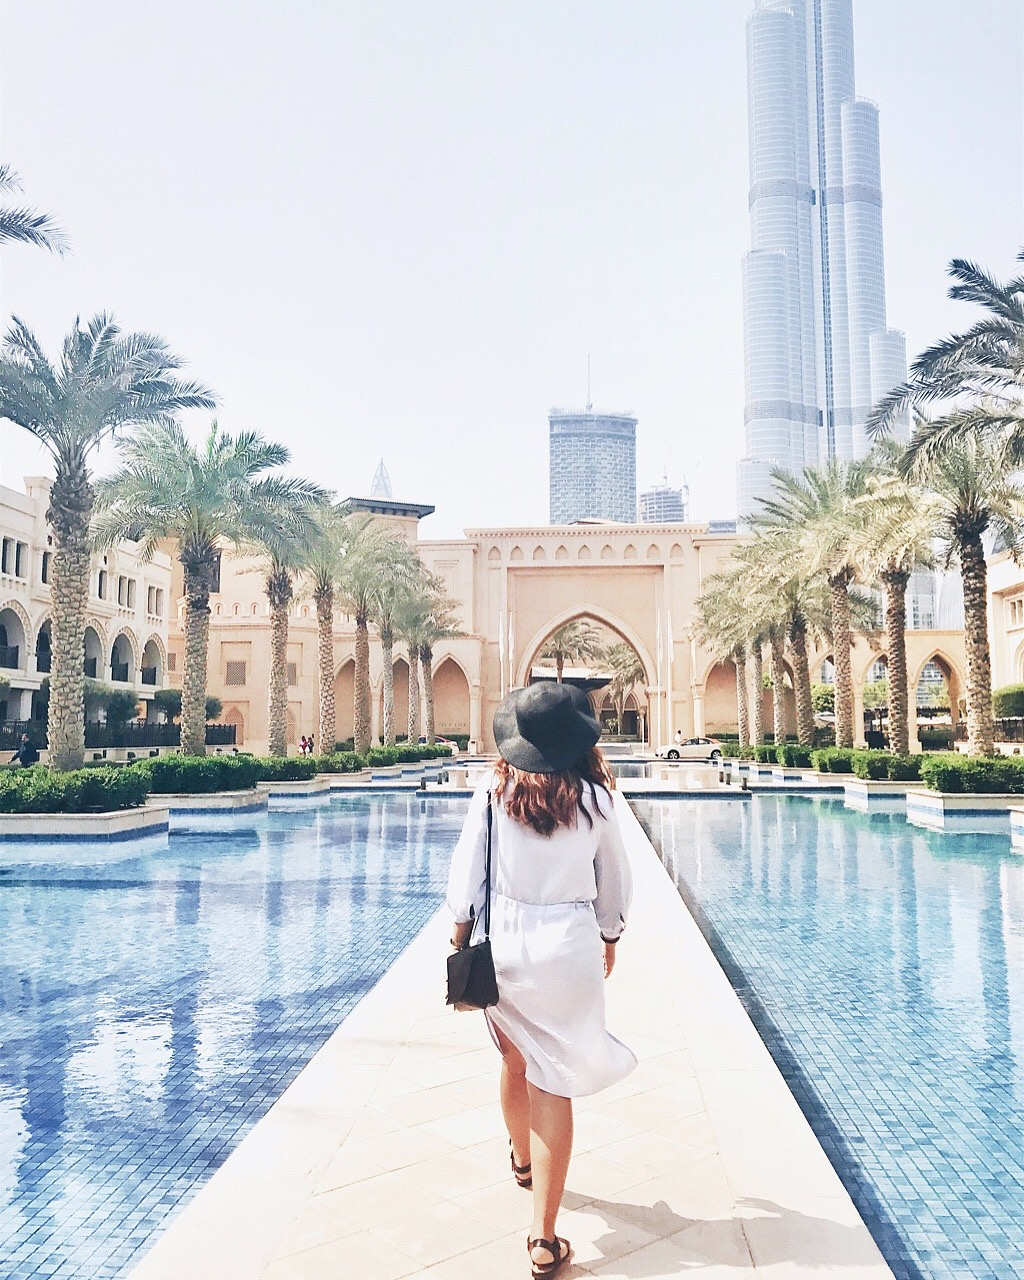 DUBAI SUMMER TRAVEL GUIDE